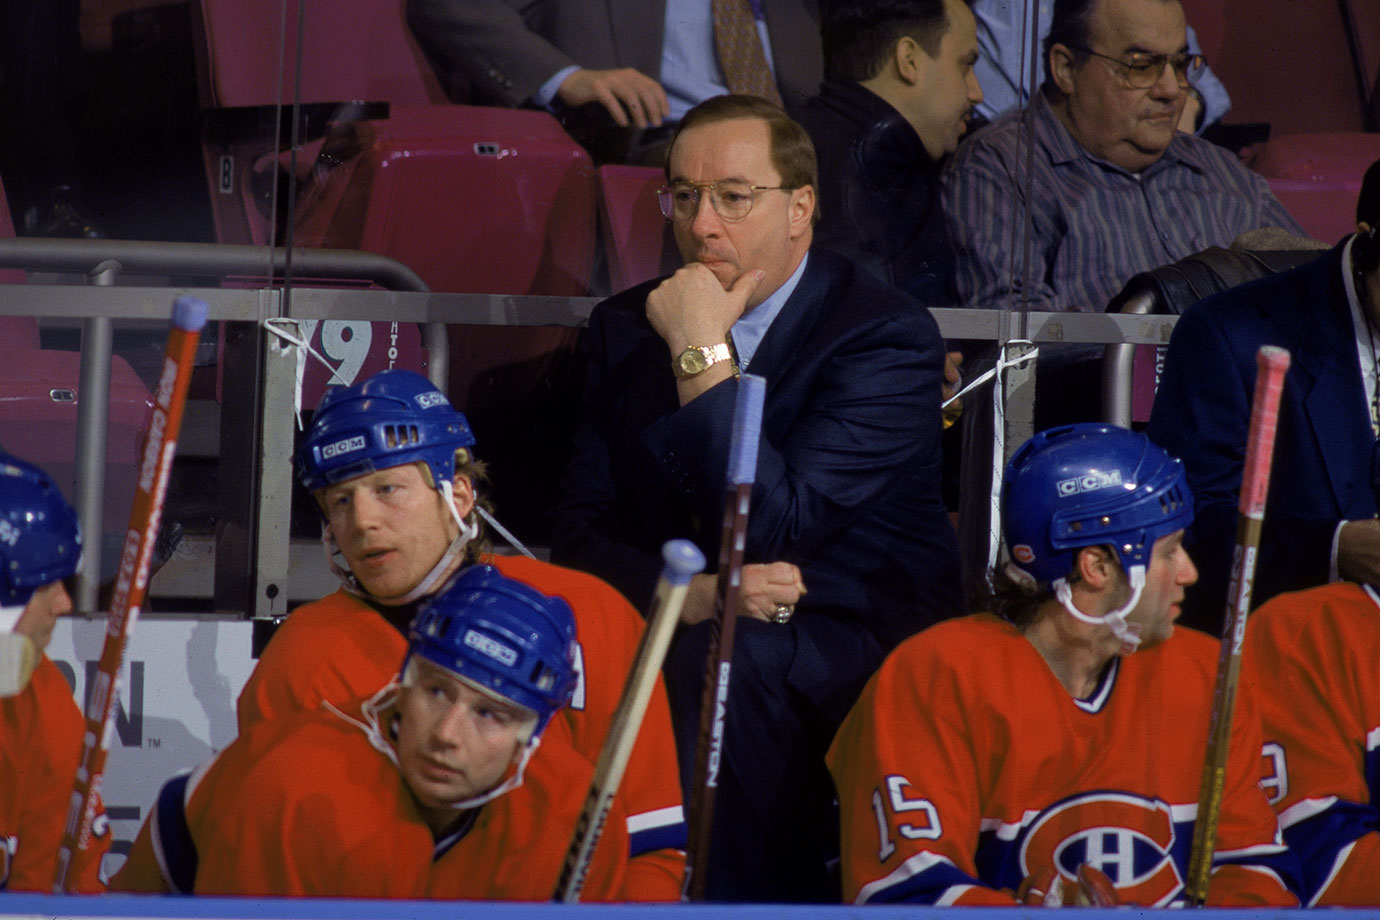 "When Montreal did not reach the 1995 playoffs—the first time in 25 years it had DNQed—the Habs' coach started the next season squarely on the hot seat. Demers' trousers burst into flames when the Habs got off to their worst start in 57 years (0-4). Team president Ron Corey then canned the coach and GM Serge Savard, saying ""You might think I'm pushing the panic button, but I am not."" The Habs then went on a 12-2 run, their season finally ending in the first round of the postseason."